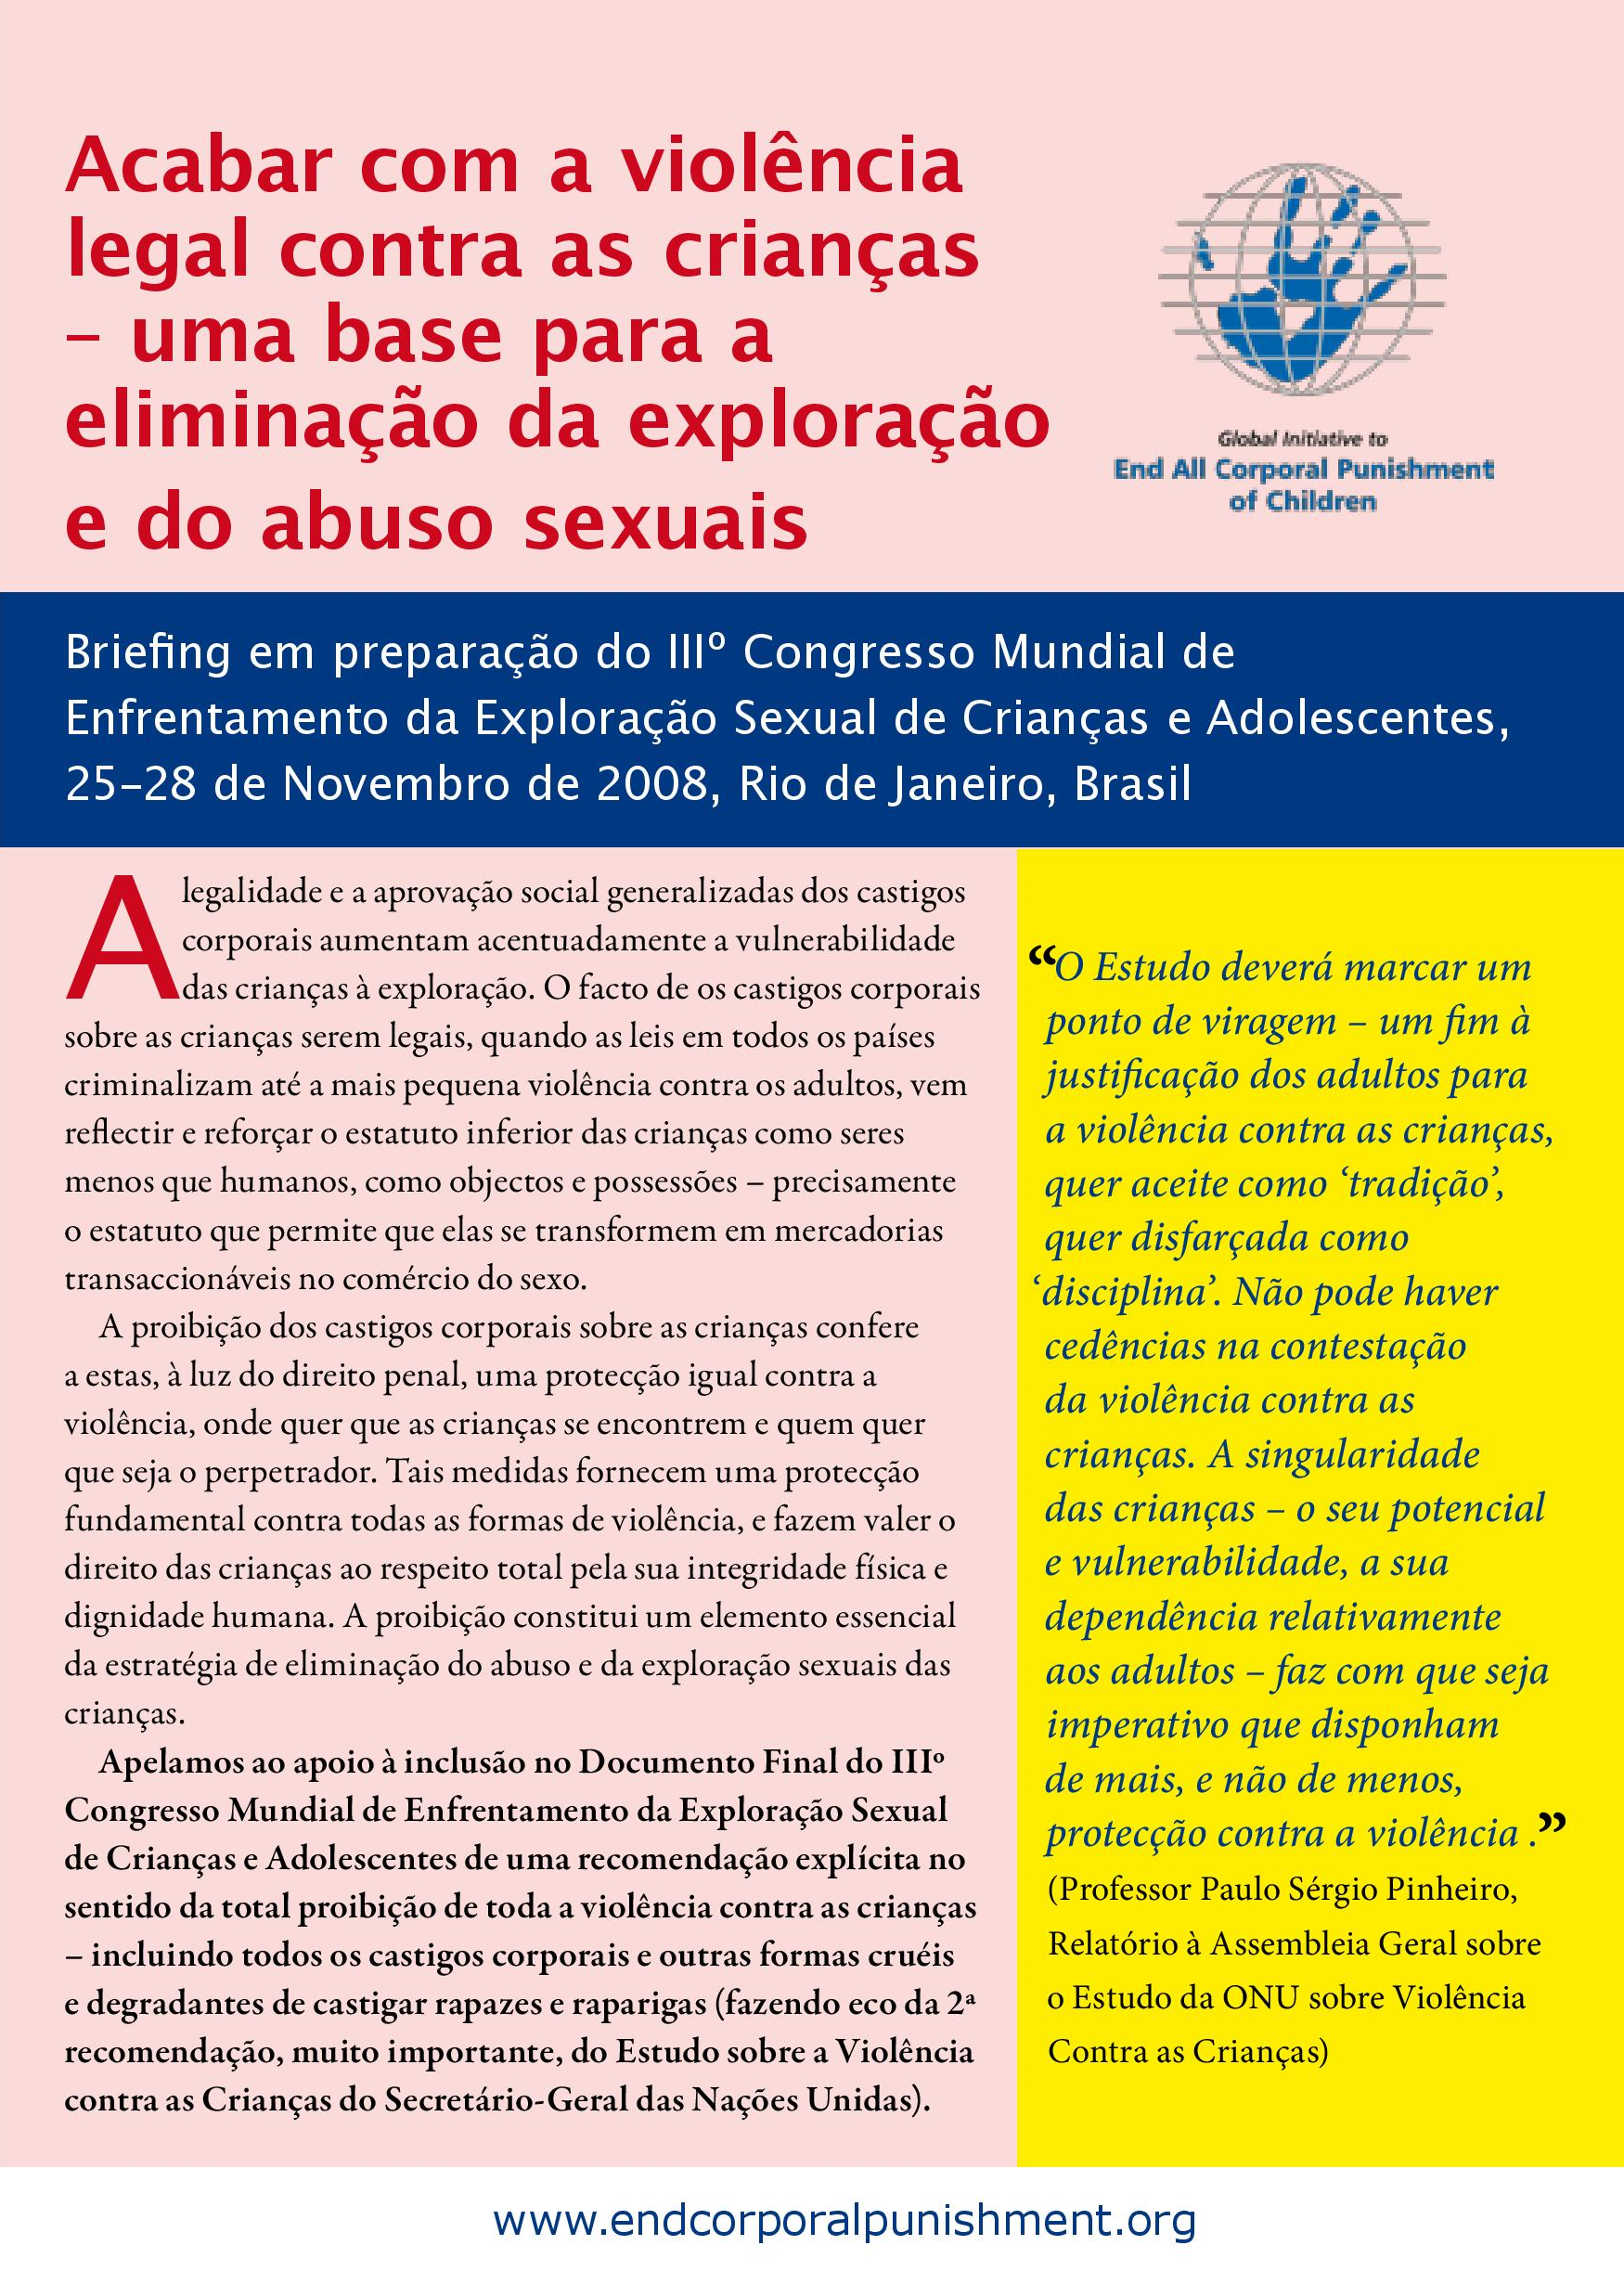 Sexual-exploitation-briefing-2008-PT-cover